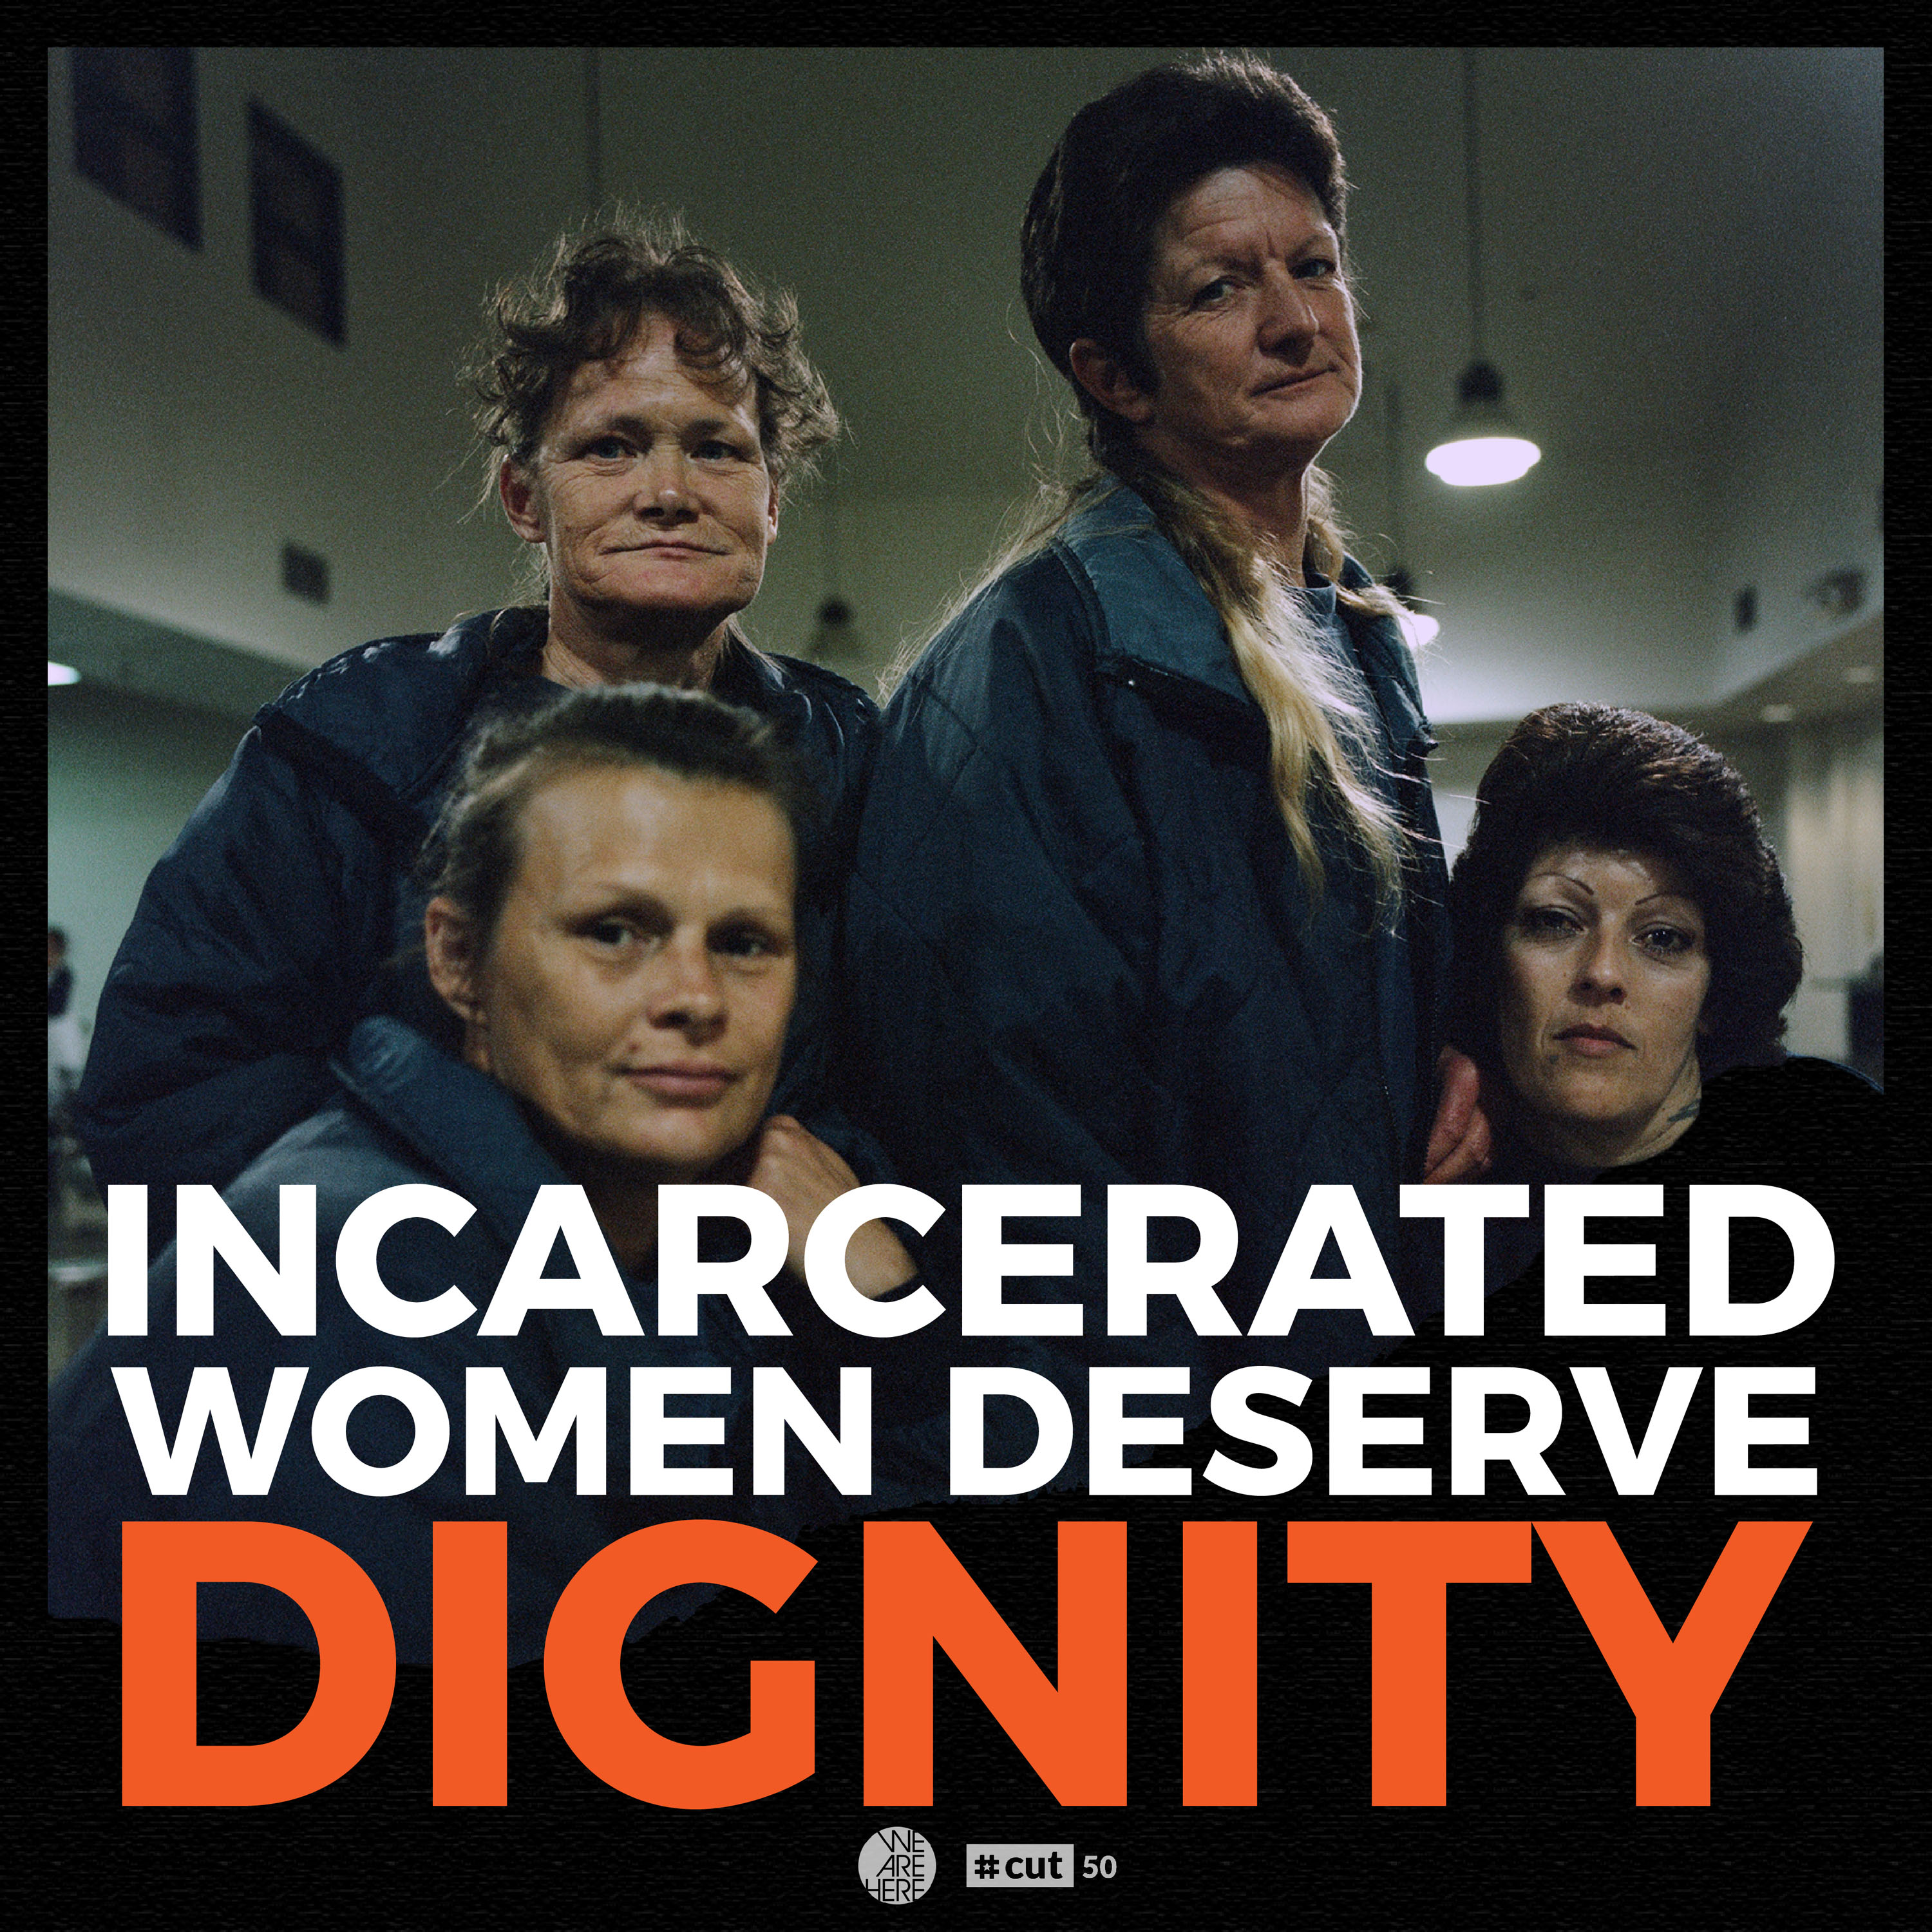 Dignity for Incarcerated Women